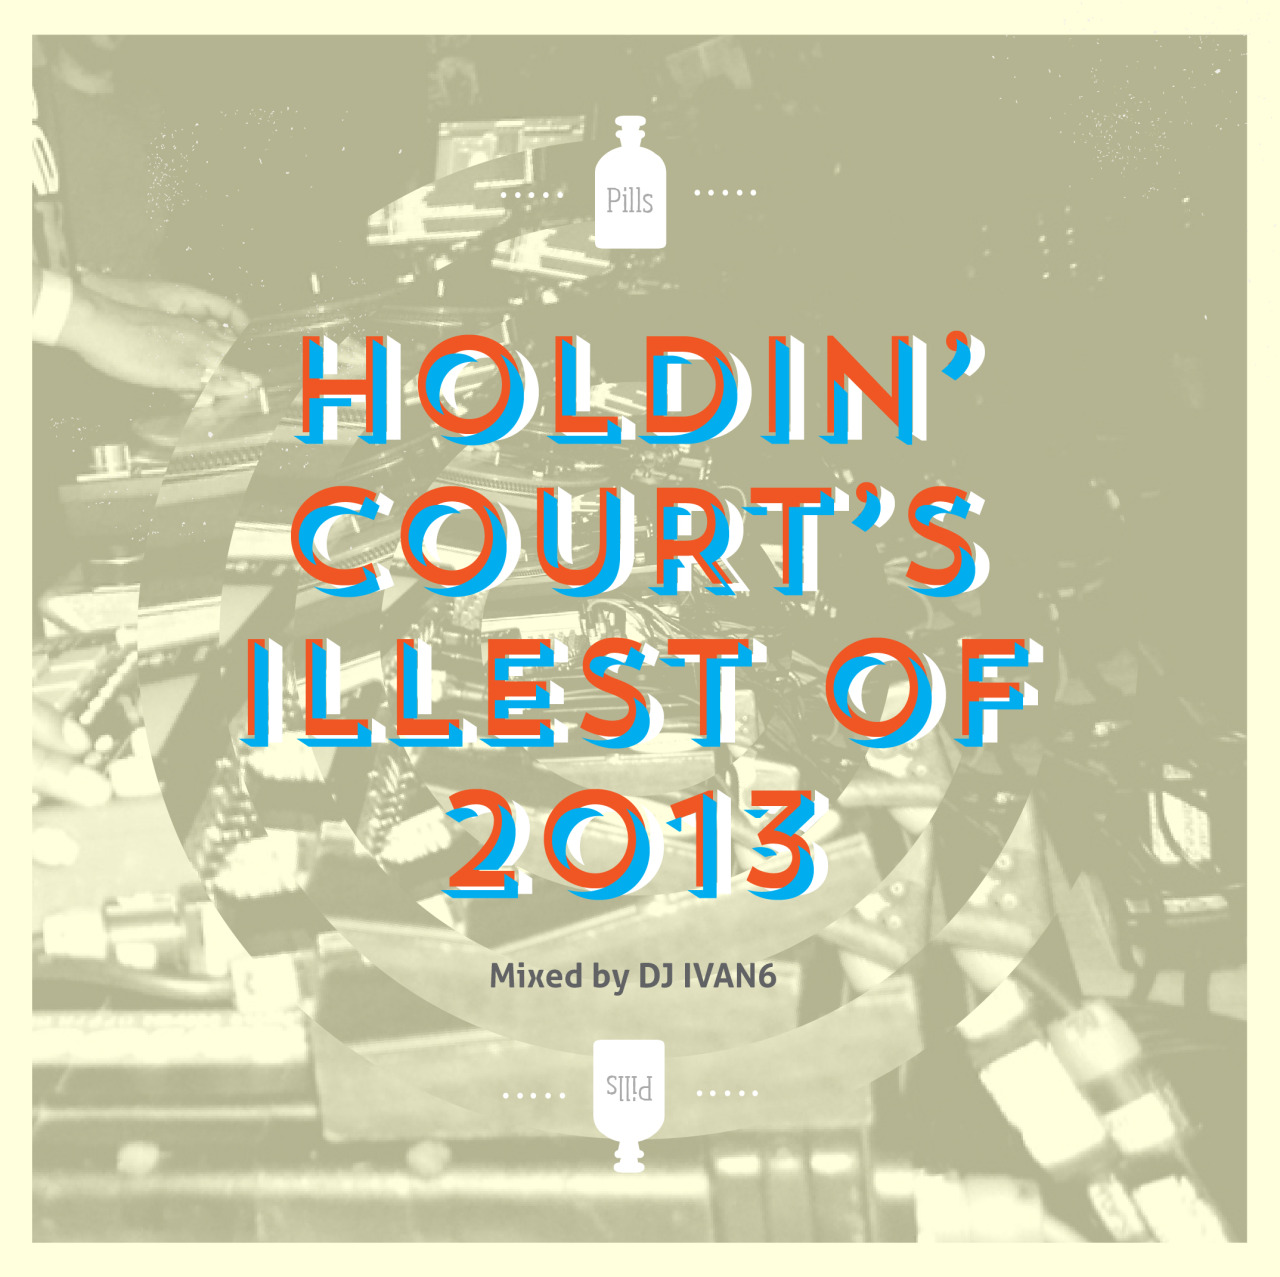 HOLDIN' COURT'S ILLEST OF 2013. MIXED BY DJ IVAN6       Holdin' Court's pick of the illest from the UK in the year 2013.   Featuring - IMS, Mr Brown, Cappo, Oliver Sudden, Benny Diction, Sam Zircon, Taskforce, The Bluntskins, Skuff, Herrotics, Bill Sykes, Ransom Badbonez, Strange U, Gee Bag, Voodoo Black, SoSincere, Mnsr Frites & Strangelove.           http://soundcloud.com/djivan6/holdin-courts-illest-of-2013